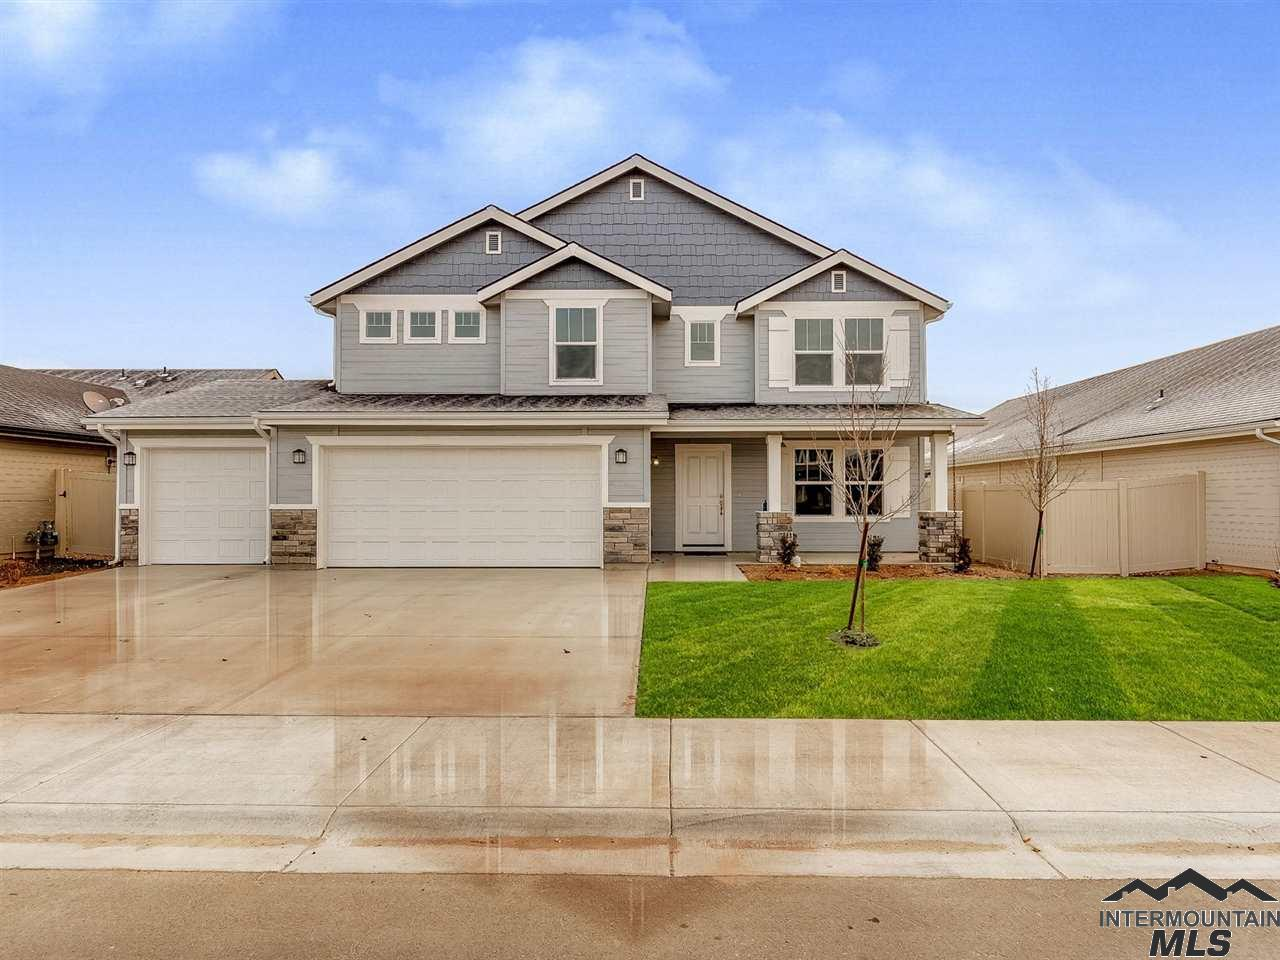 Photo for 16847 Bethany Ave., Caldwell, ID 83607 (MLS # 98716393)